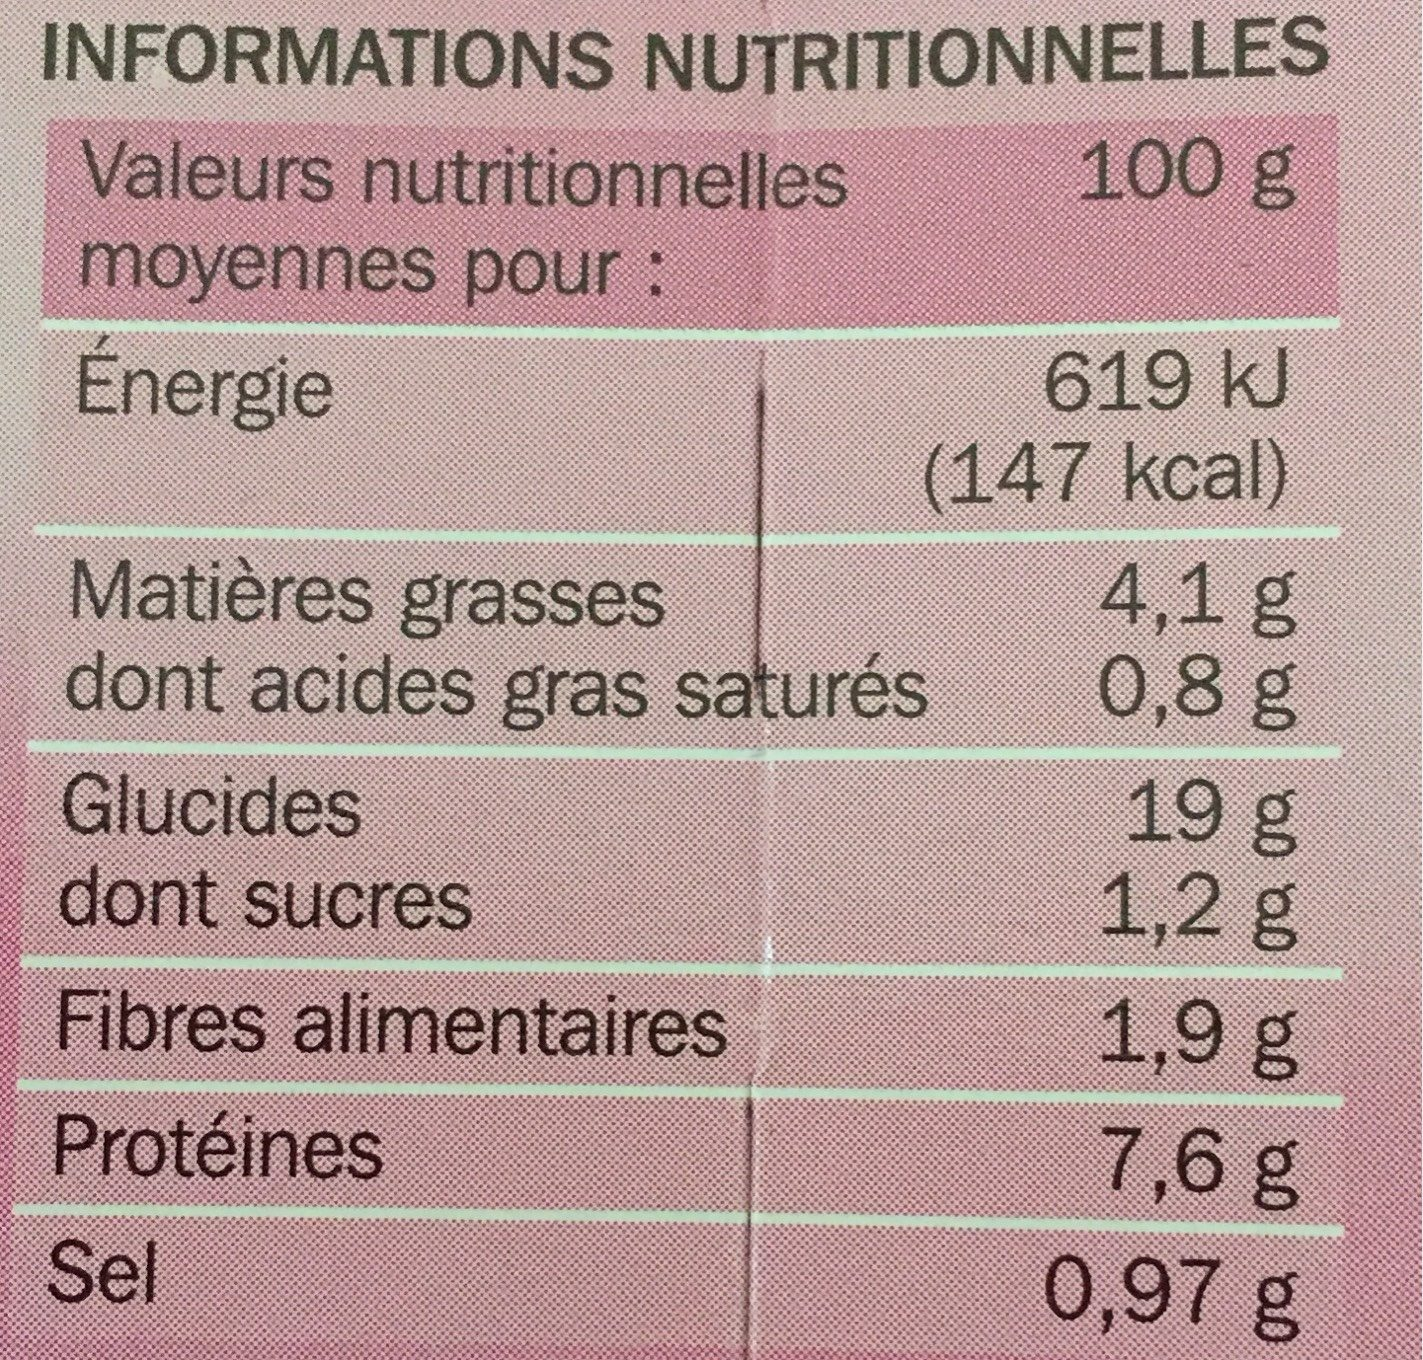 Paëlla royale - Nutrition facts